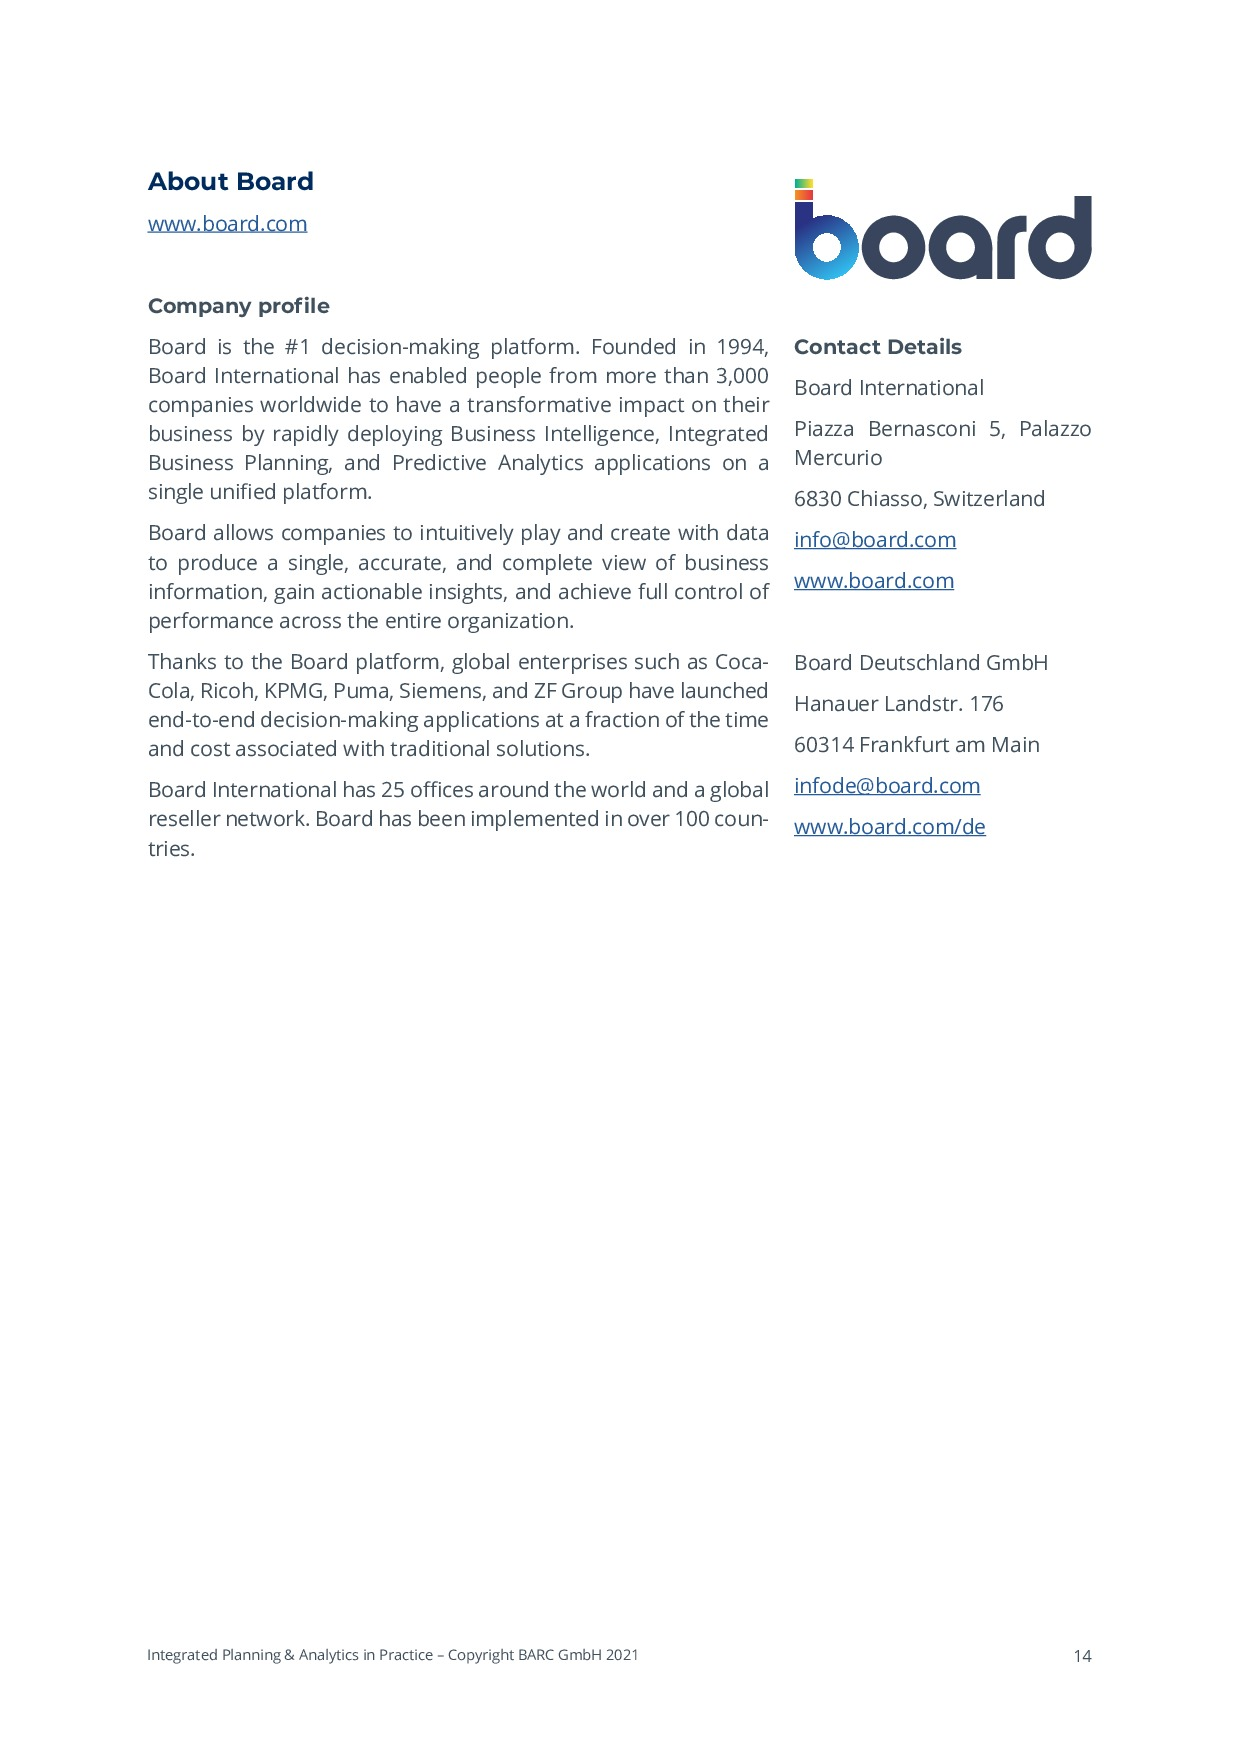 BARC - Integrated Planning & Analytics in Practice   Page 14